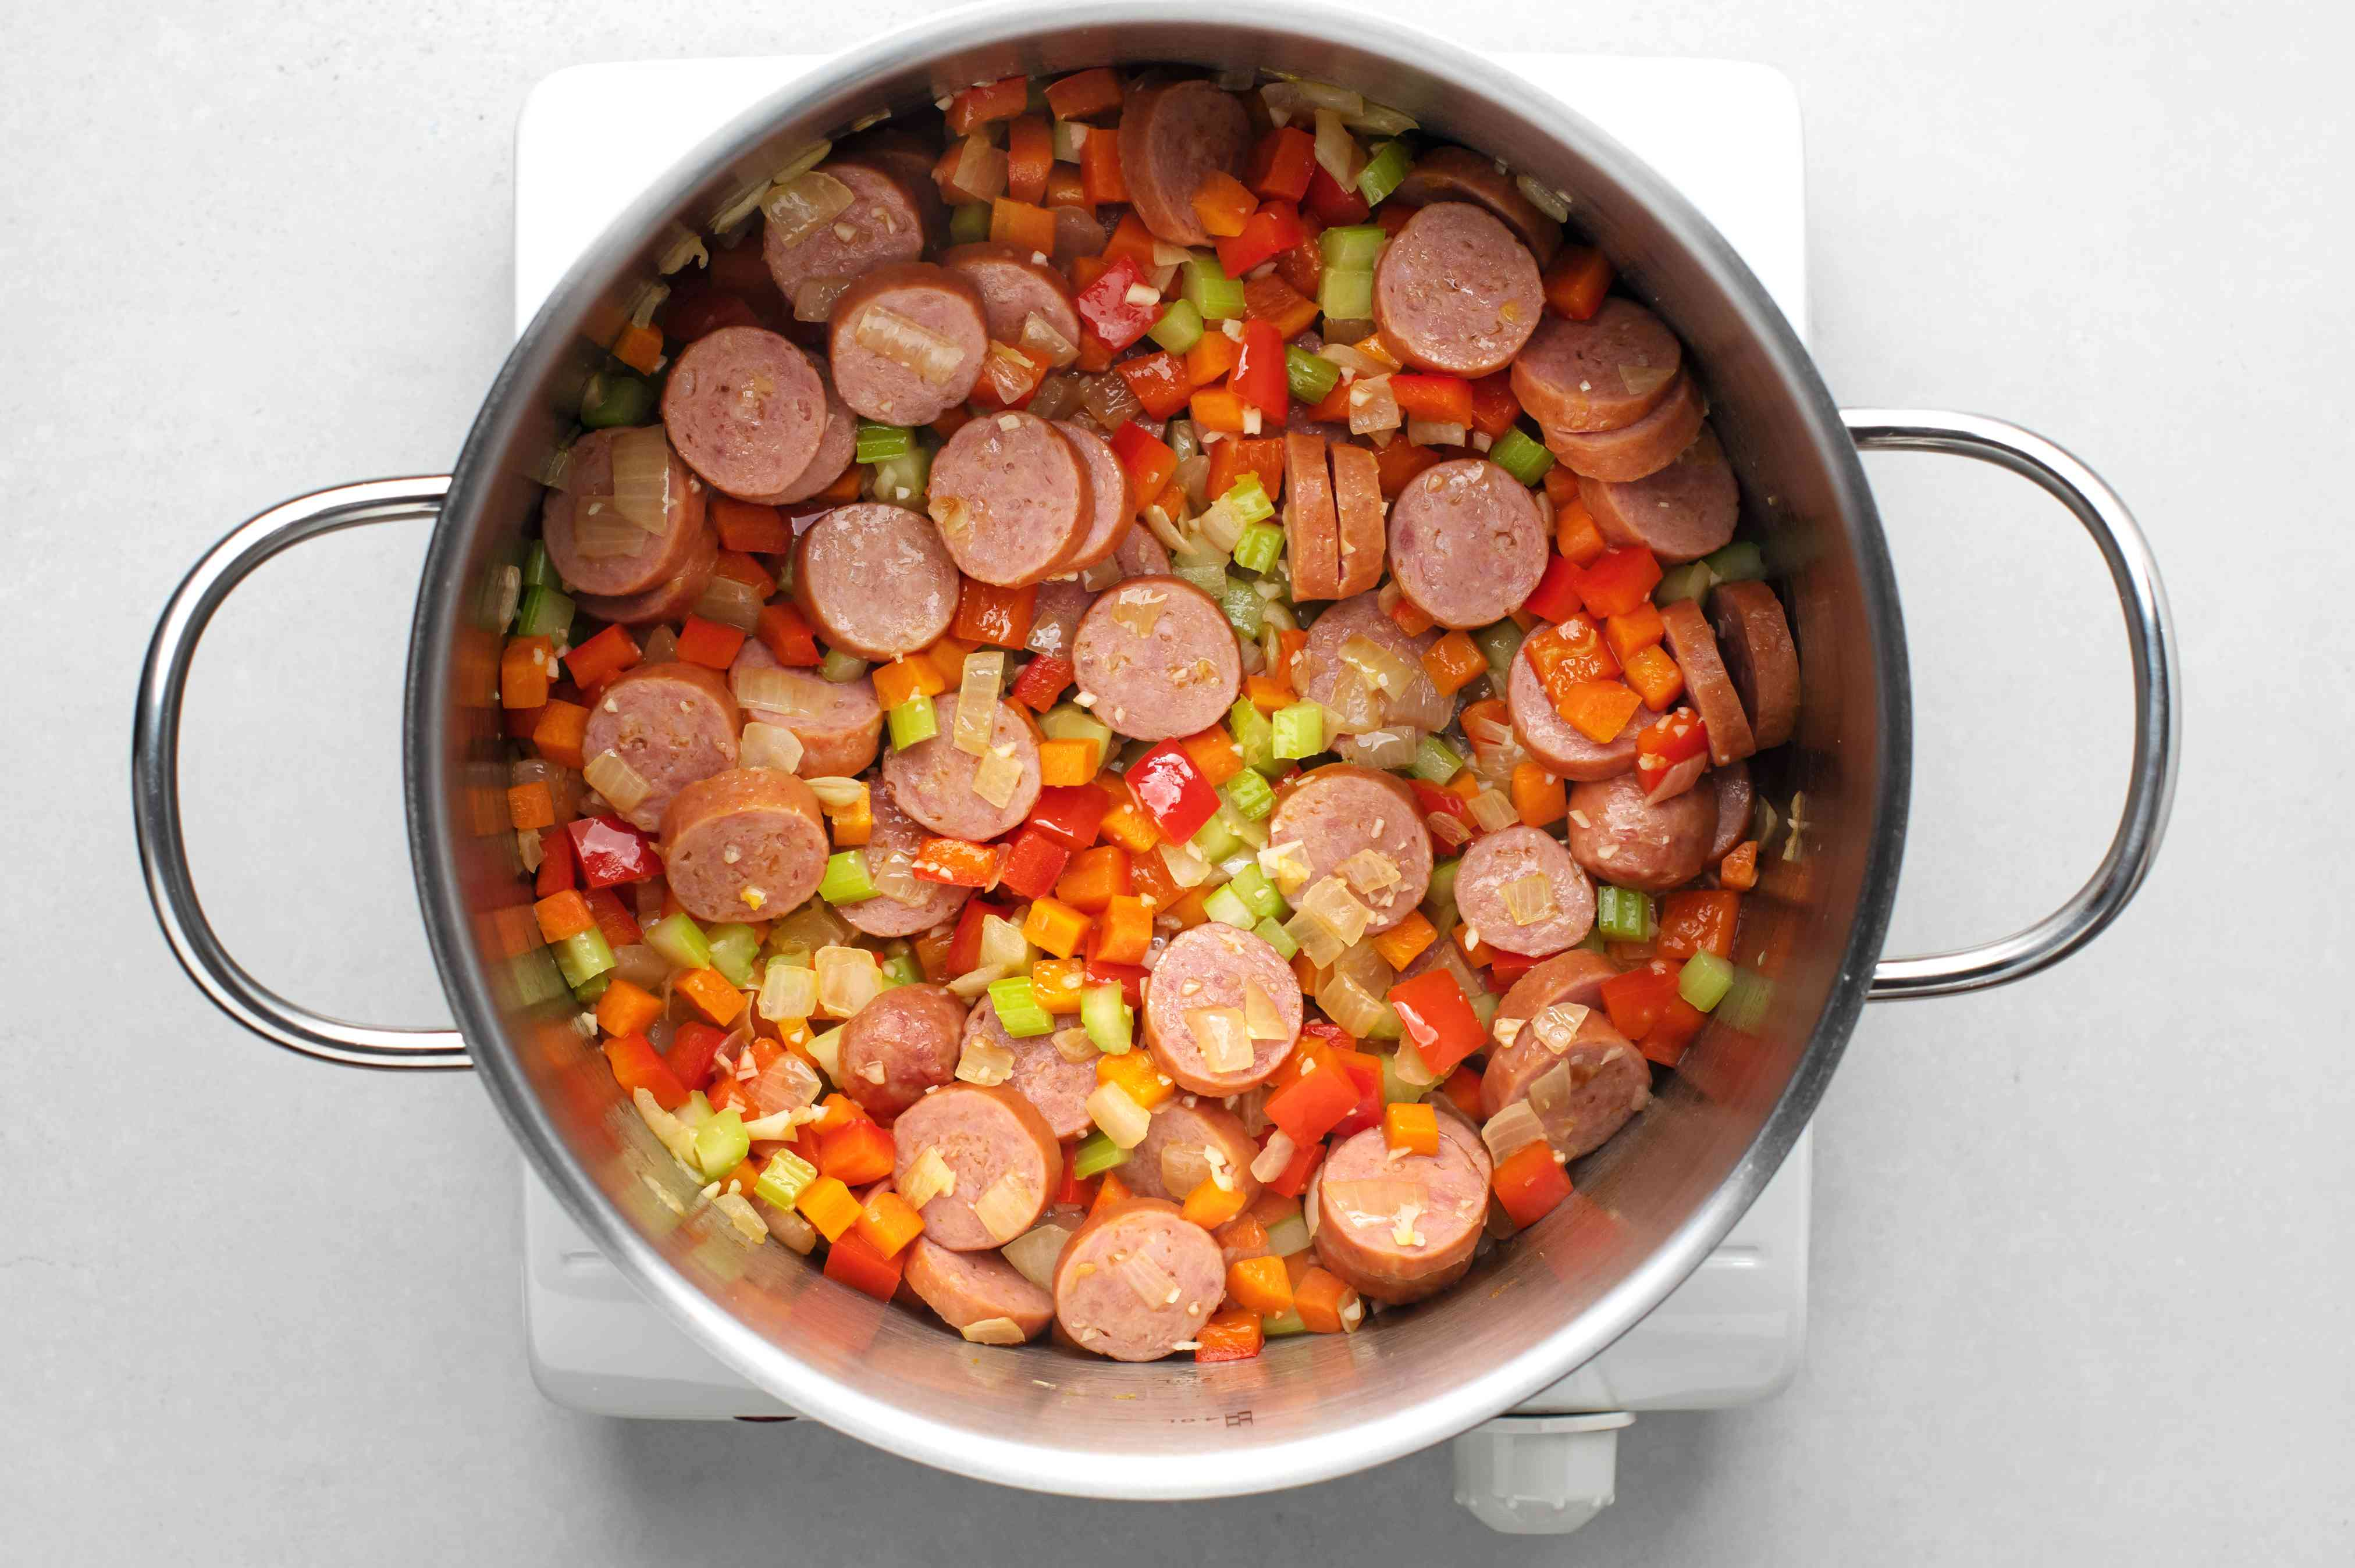 onions, carrots, bell pepper, celery, minced garlic, and sausage cooking in a pot